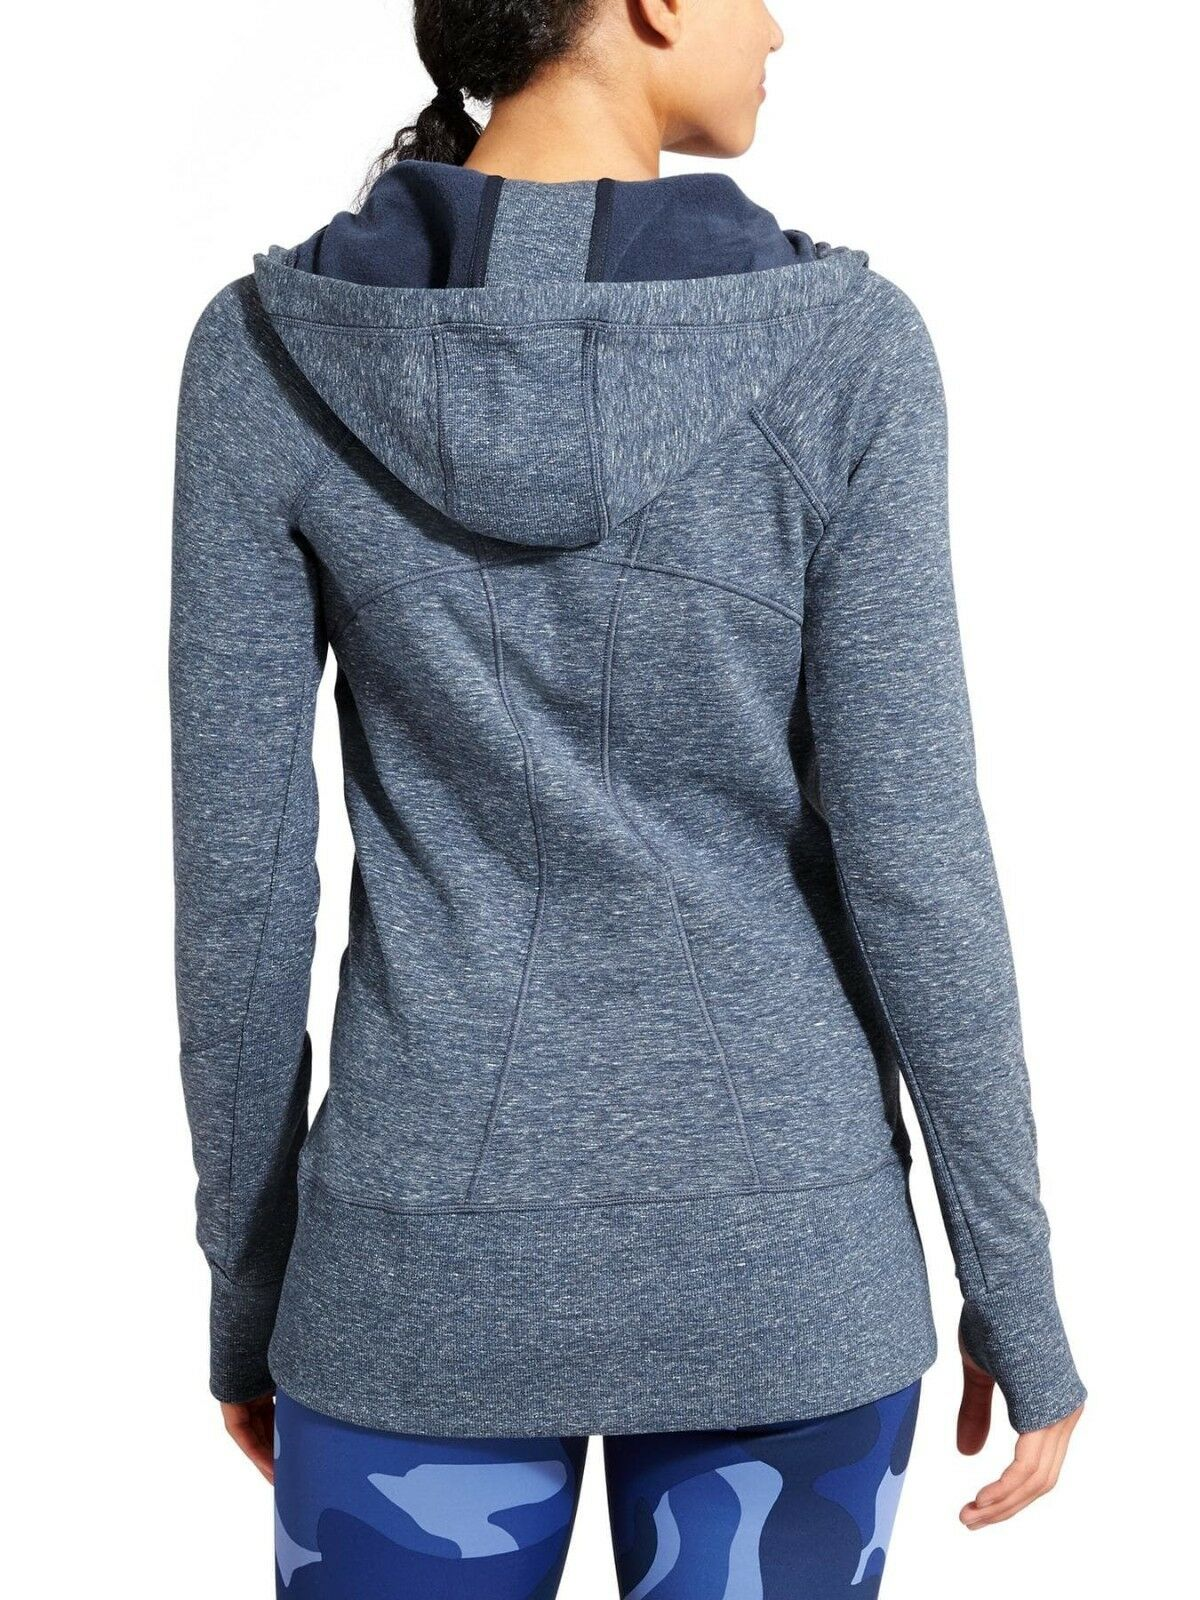 Athleta Athleta Athleta CYA Strength Hoodie 2, Navy Heather Space Dye SIZE XXS       v96 383ff0